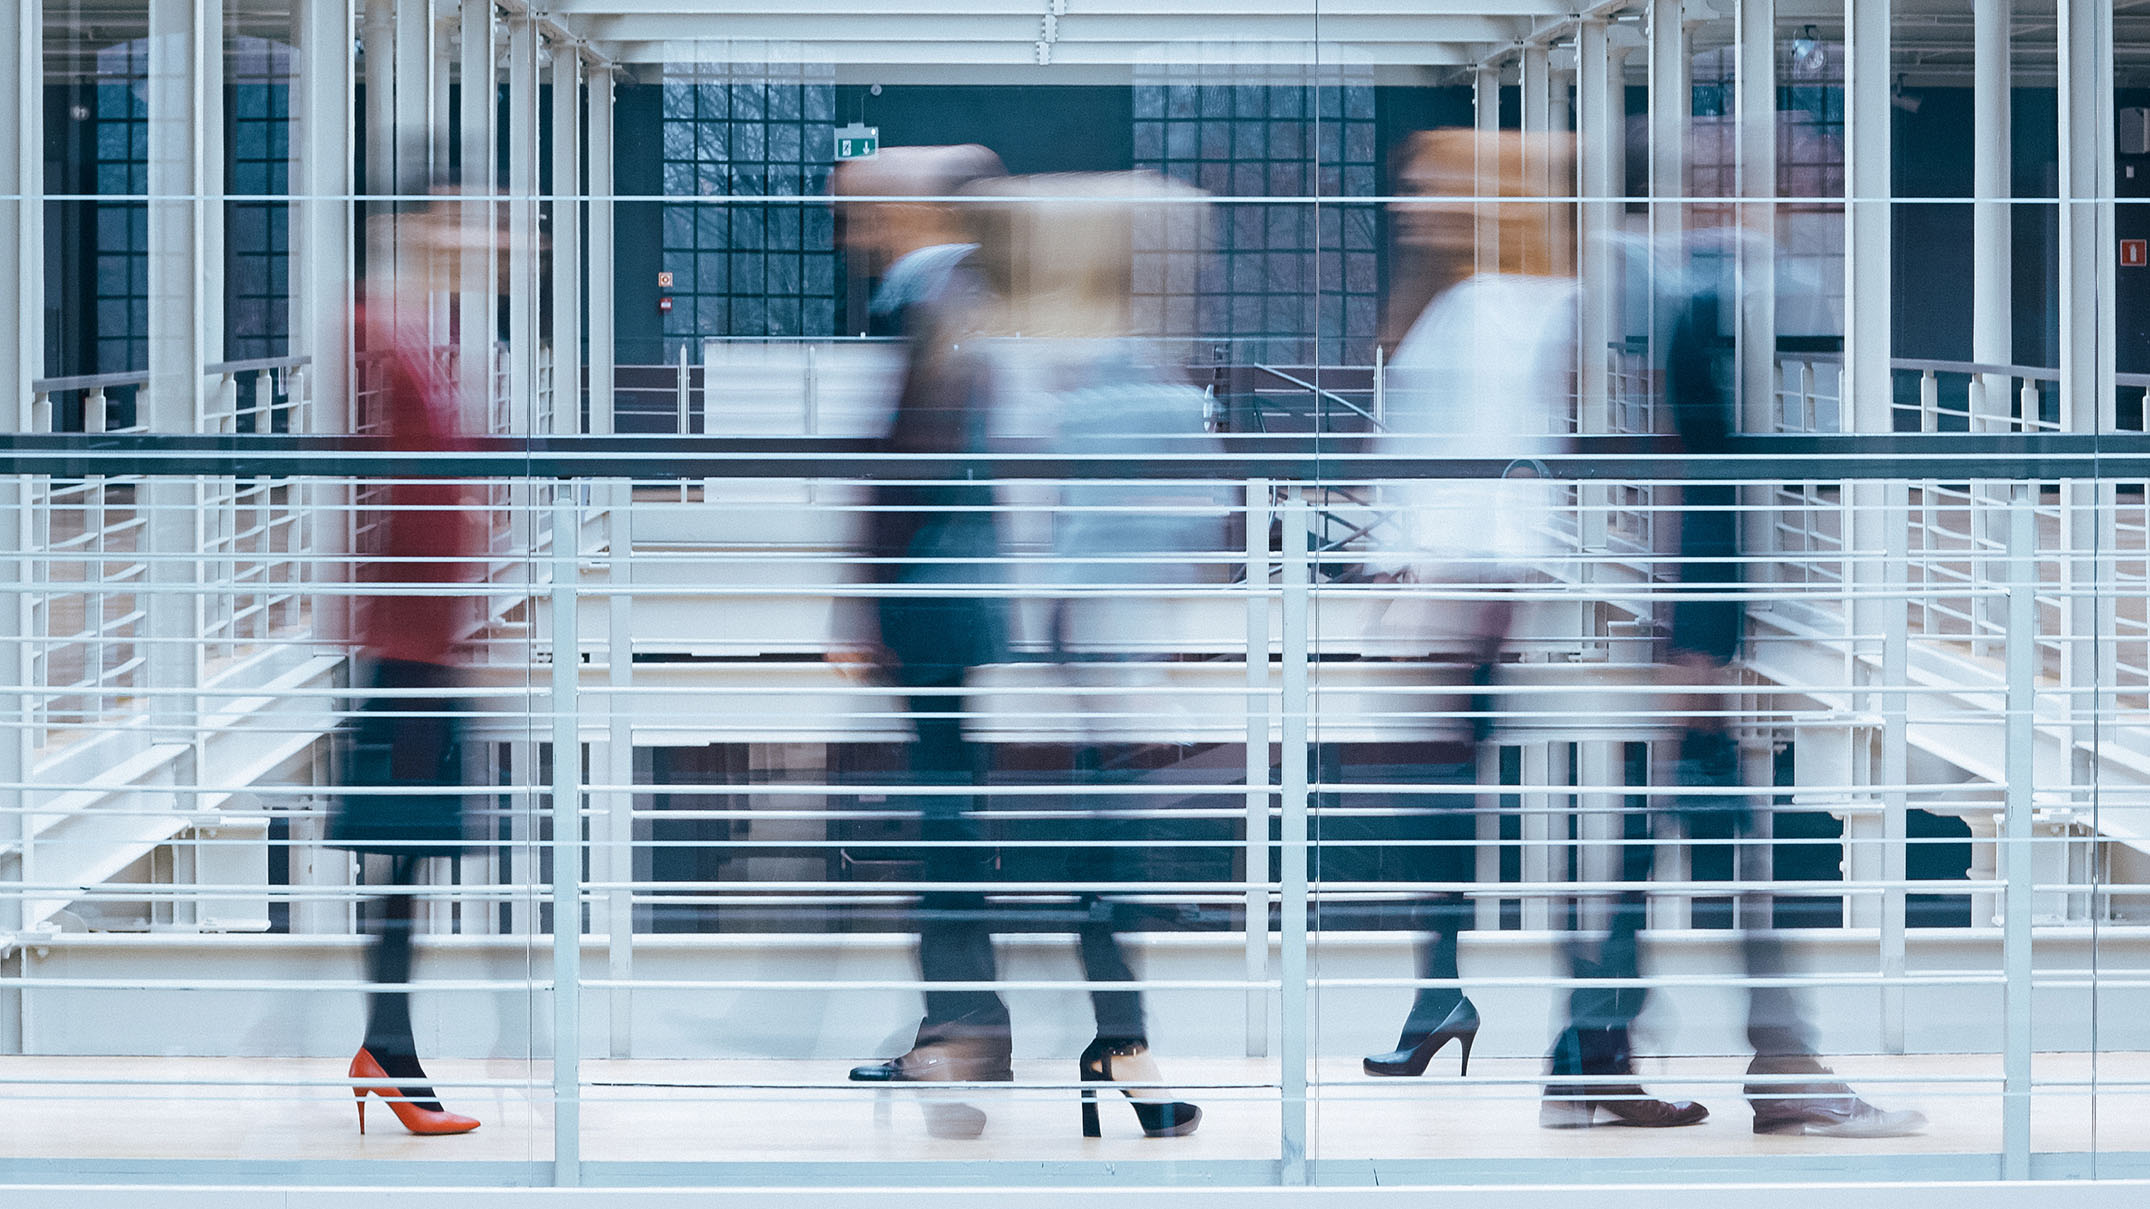 Blurry image of fast moving office workers in modern building